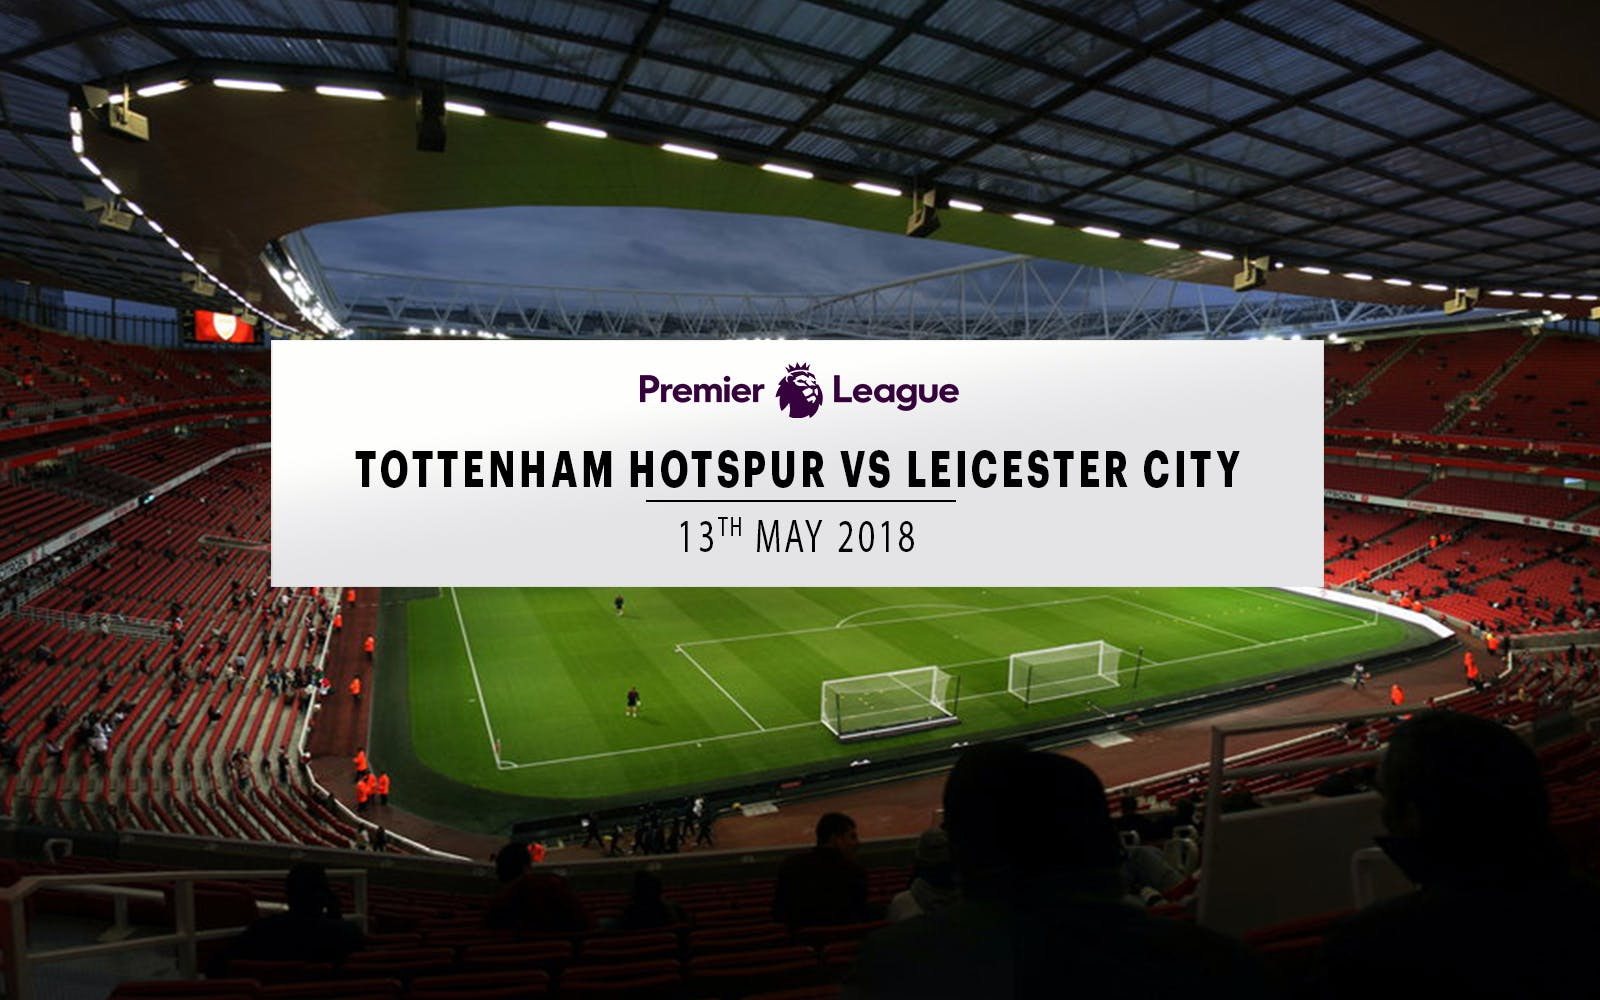 tottenham hotspur vs leicester city - 13th may 2018-1